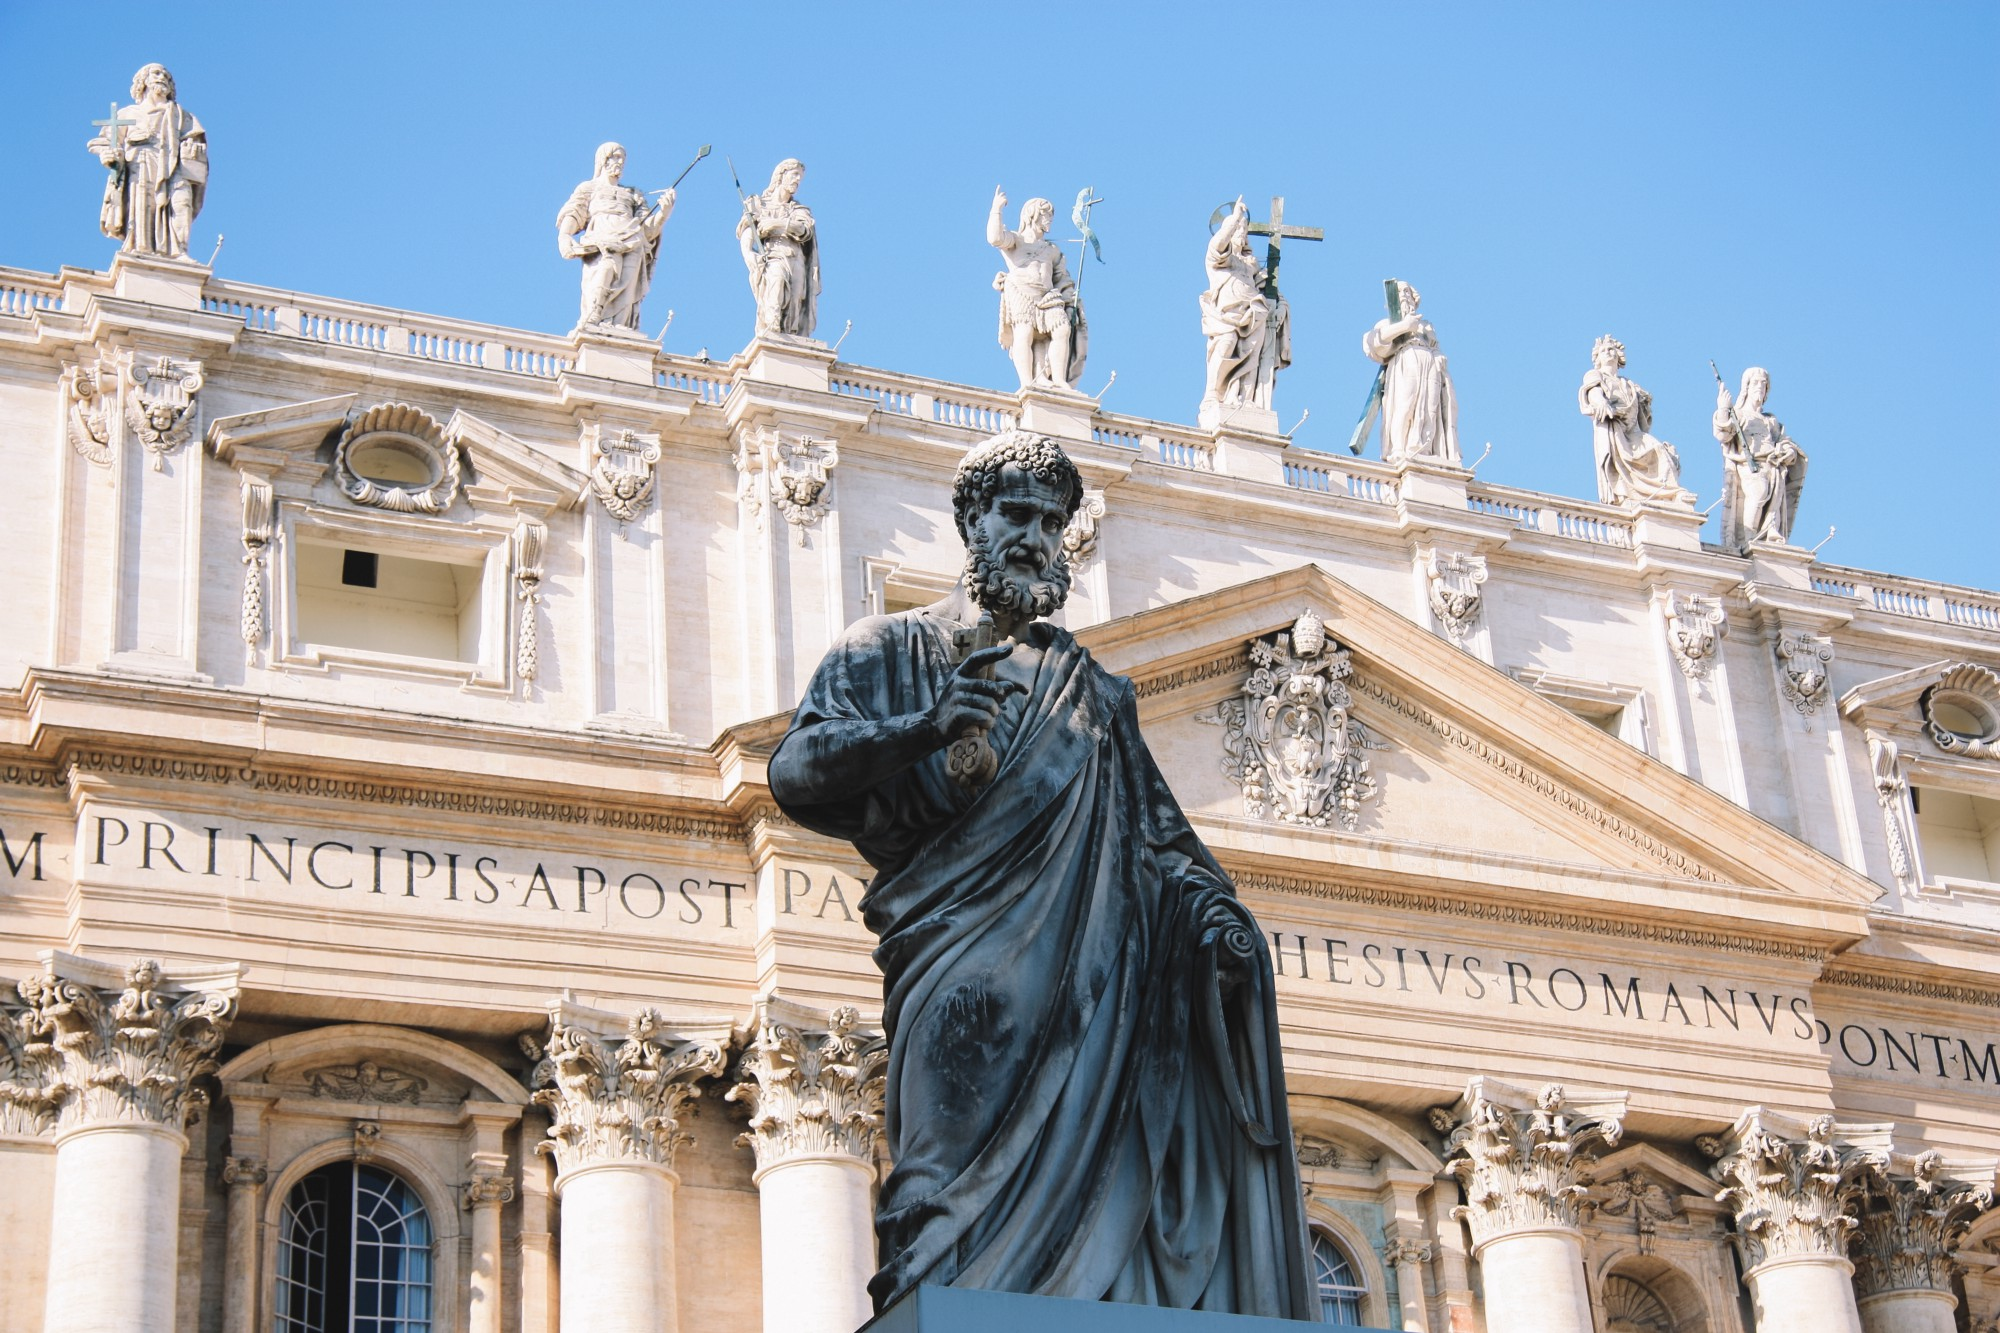 A statue in front of St. Peter's Basilica in the Vatican